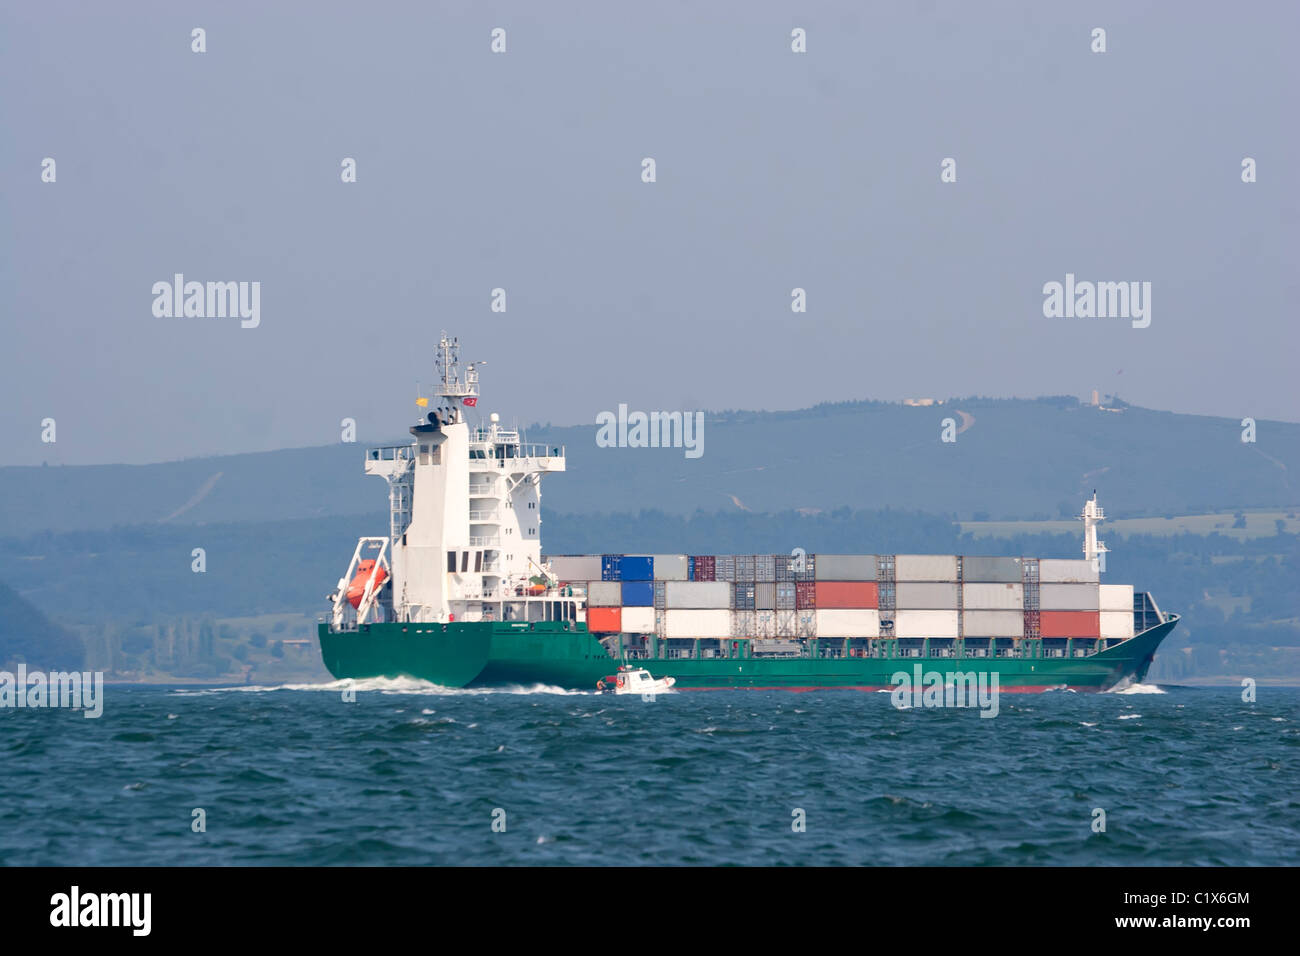 Container ship sailing to the port - Stock Image